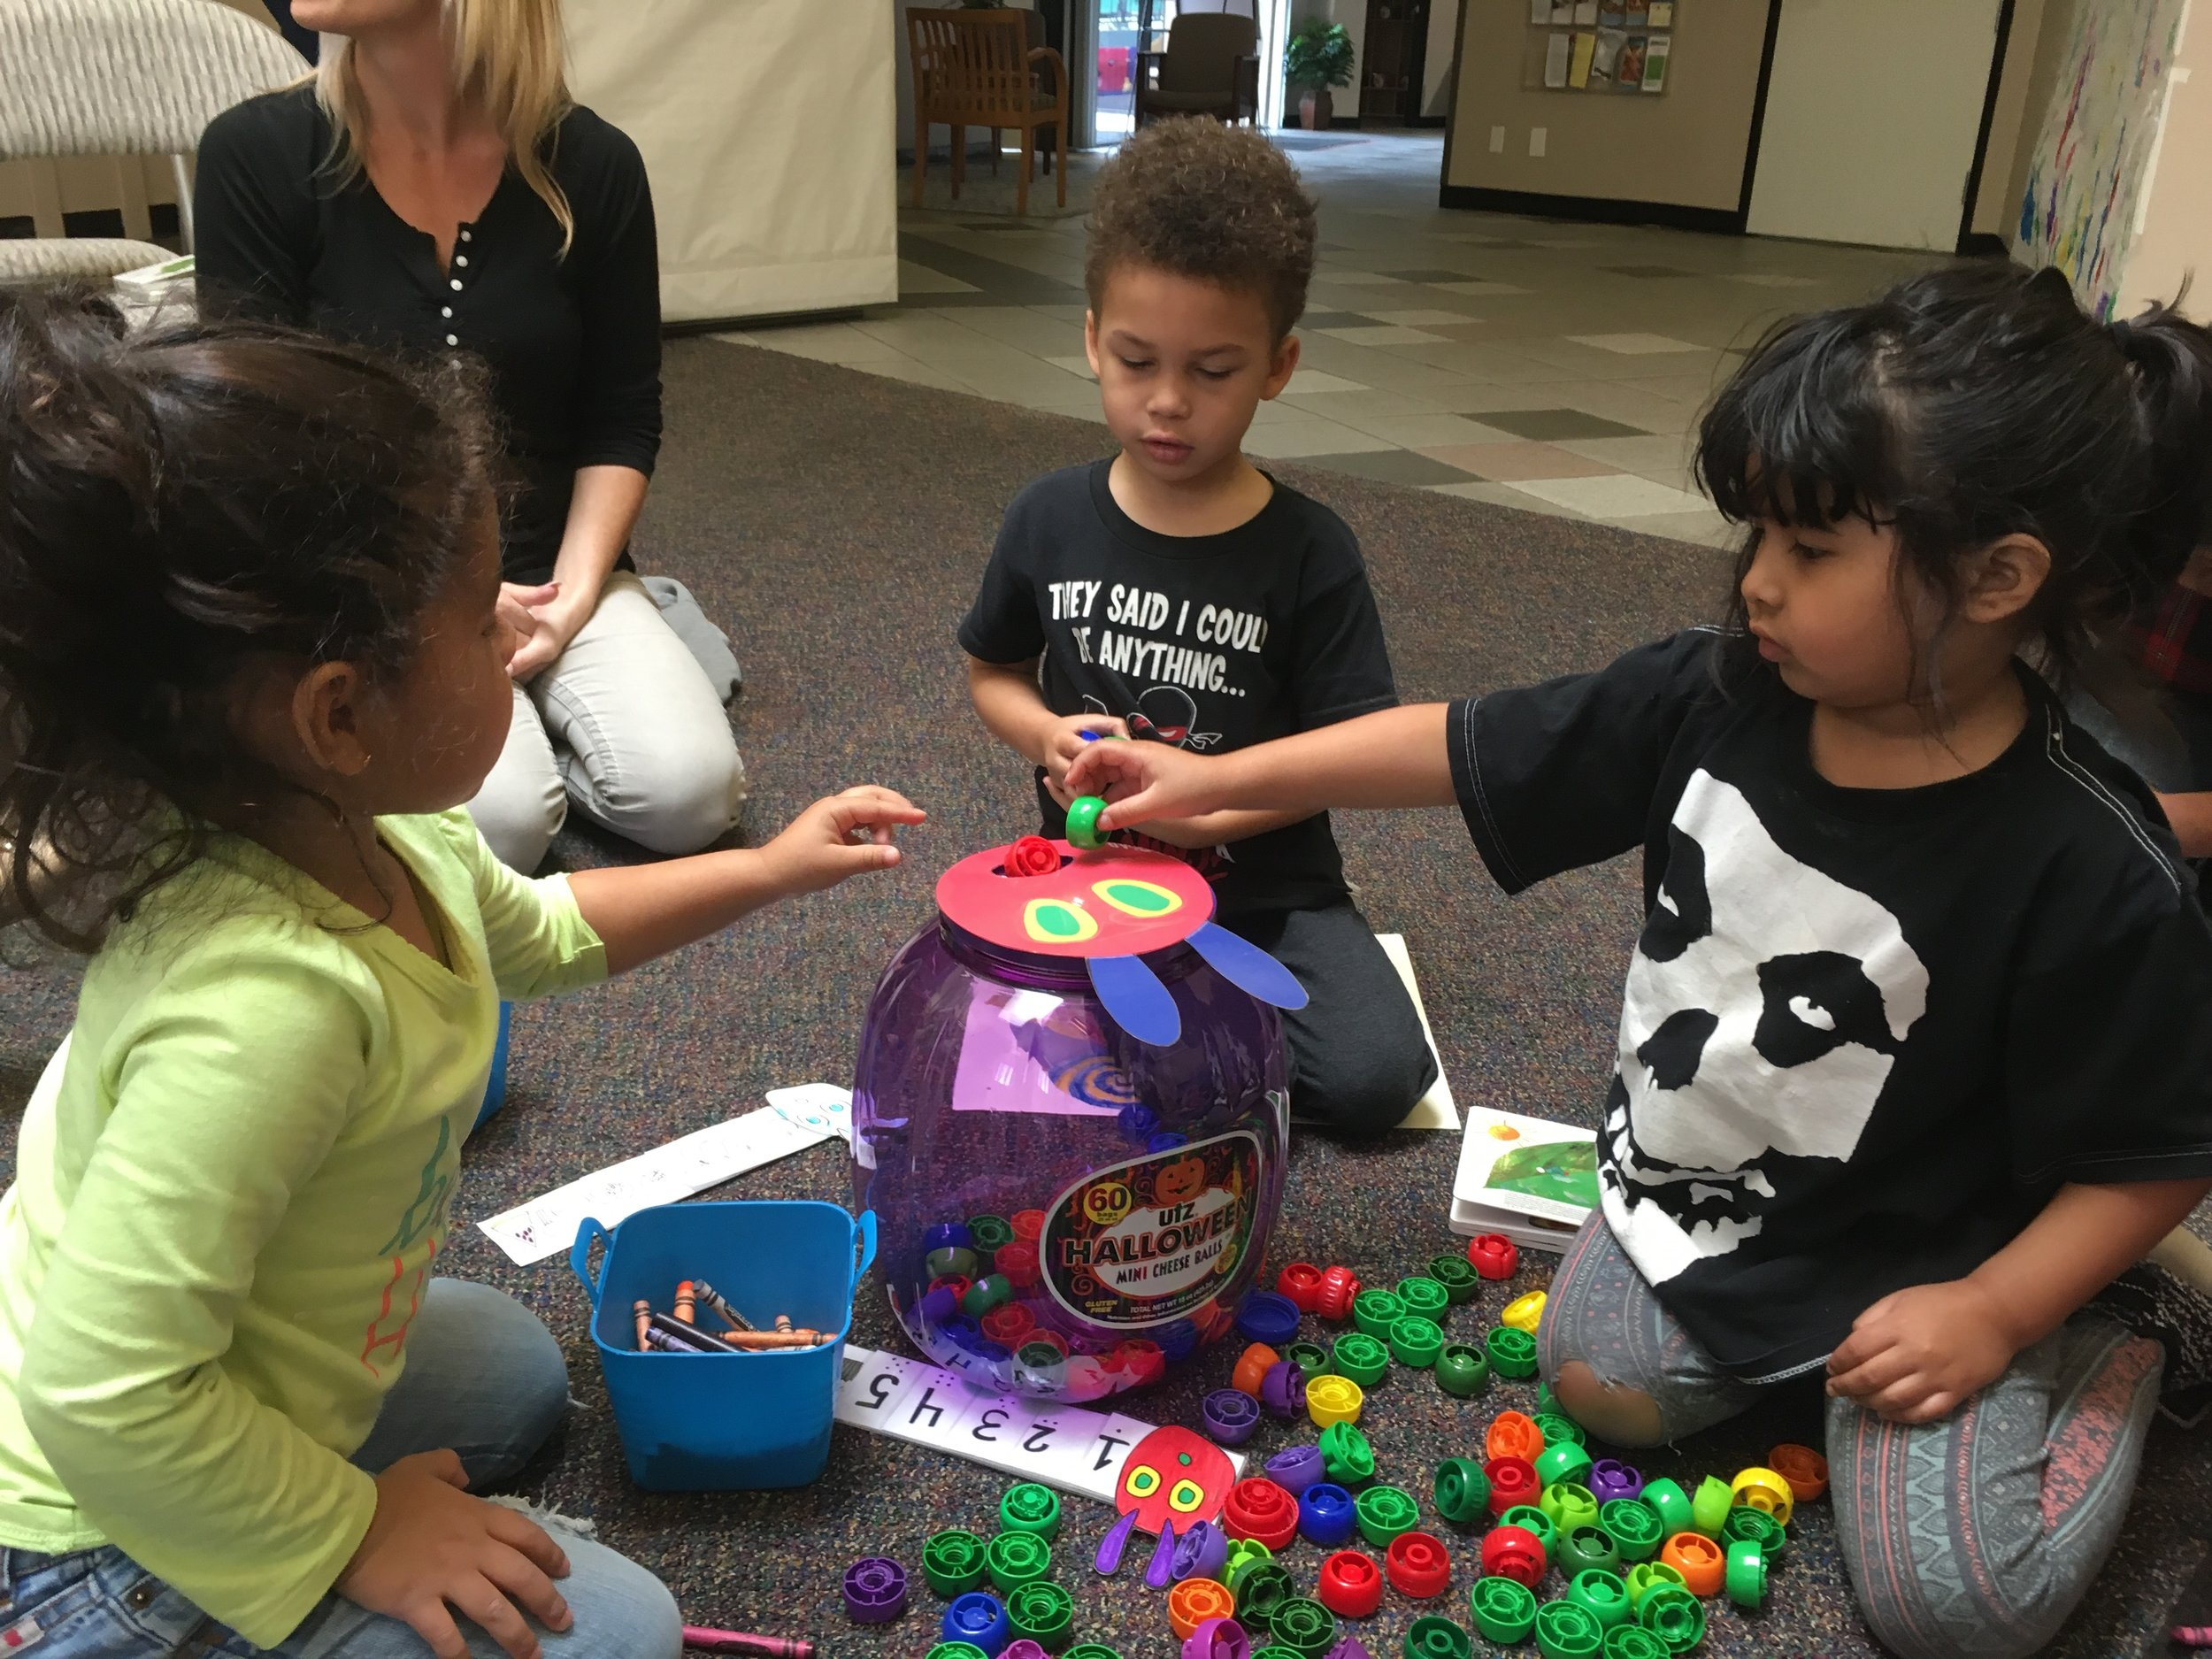 Children in our Family Literacy Program practice skills like counting, rhyming, and color recognition by participating in fun activities!